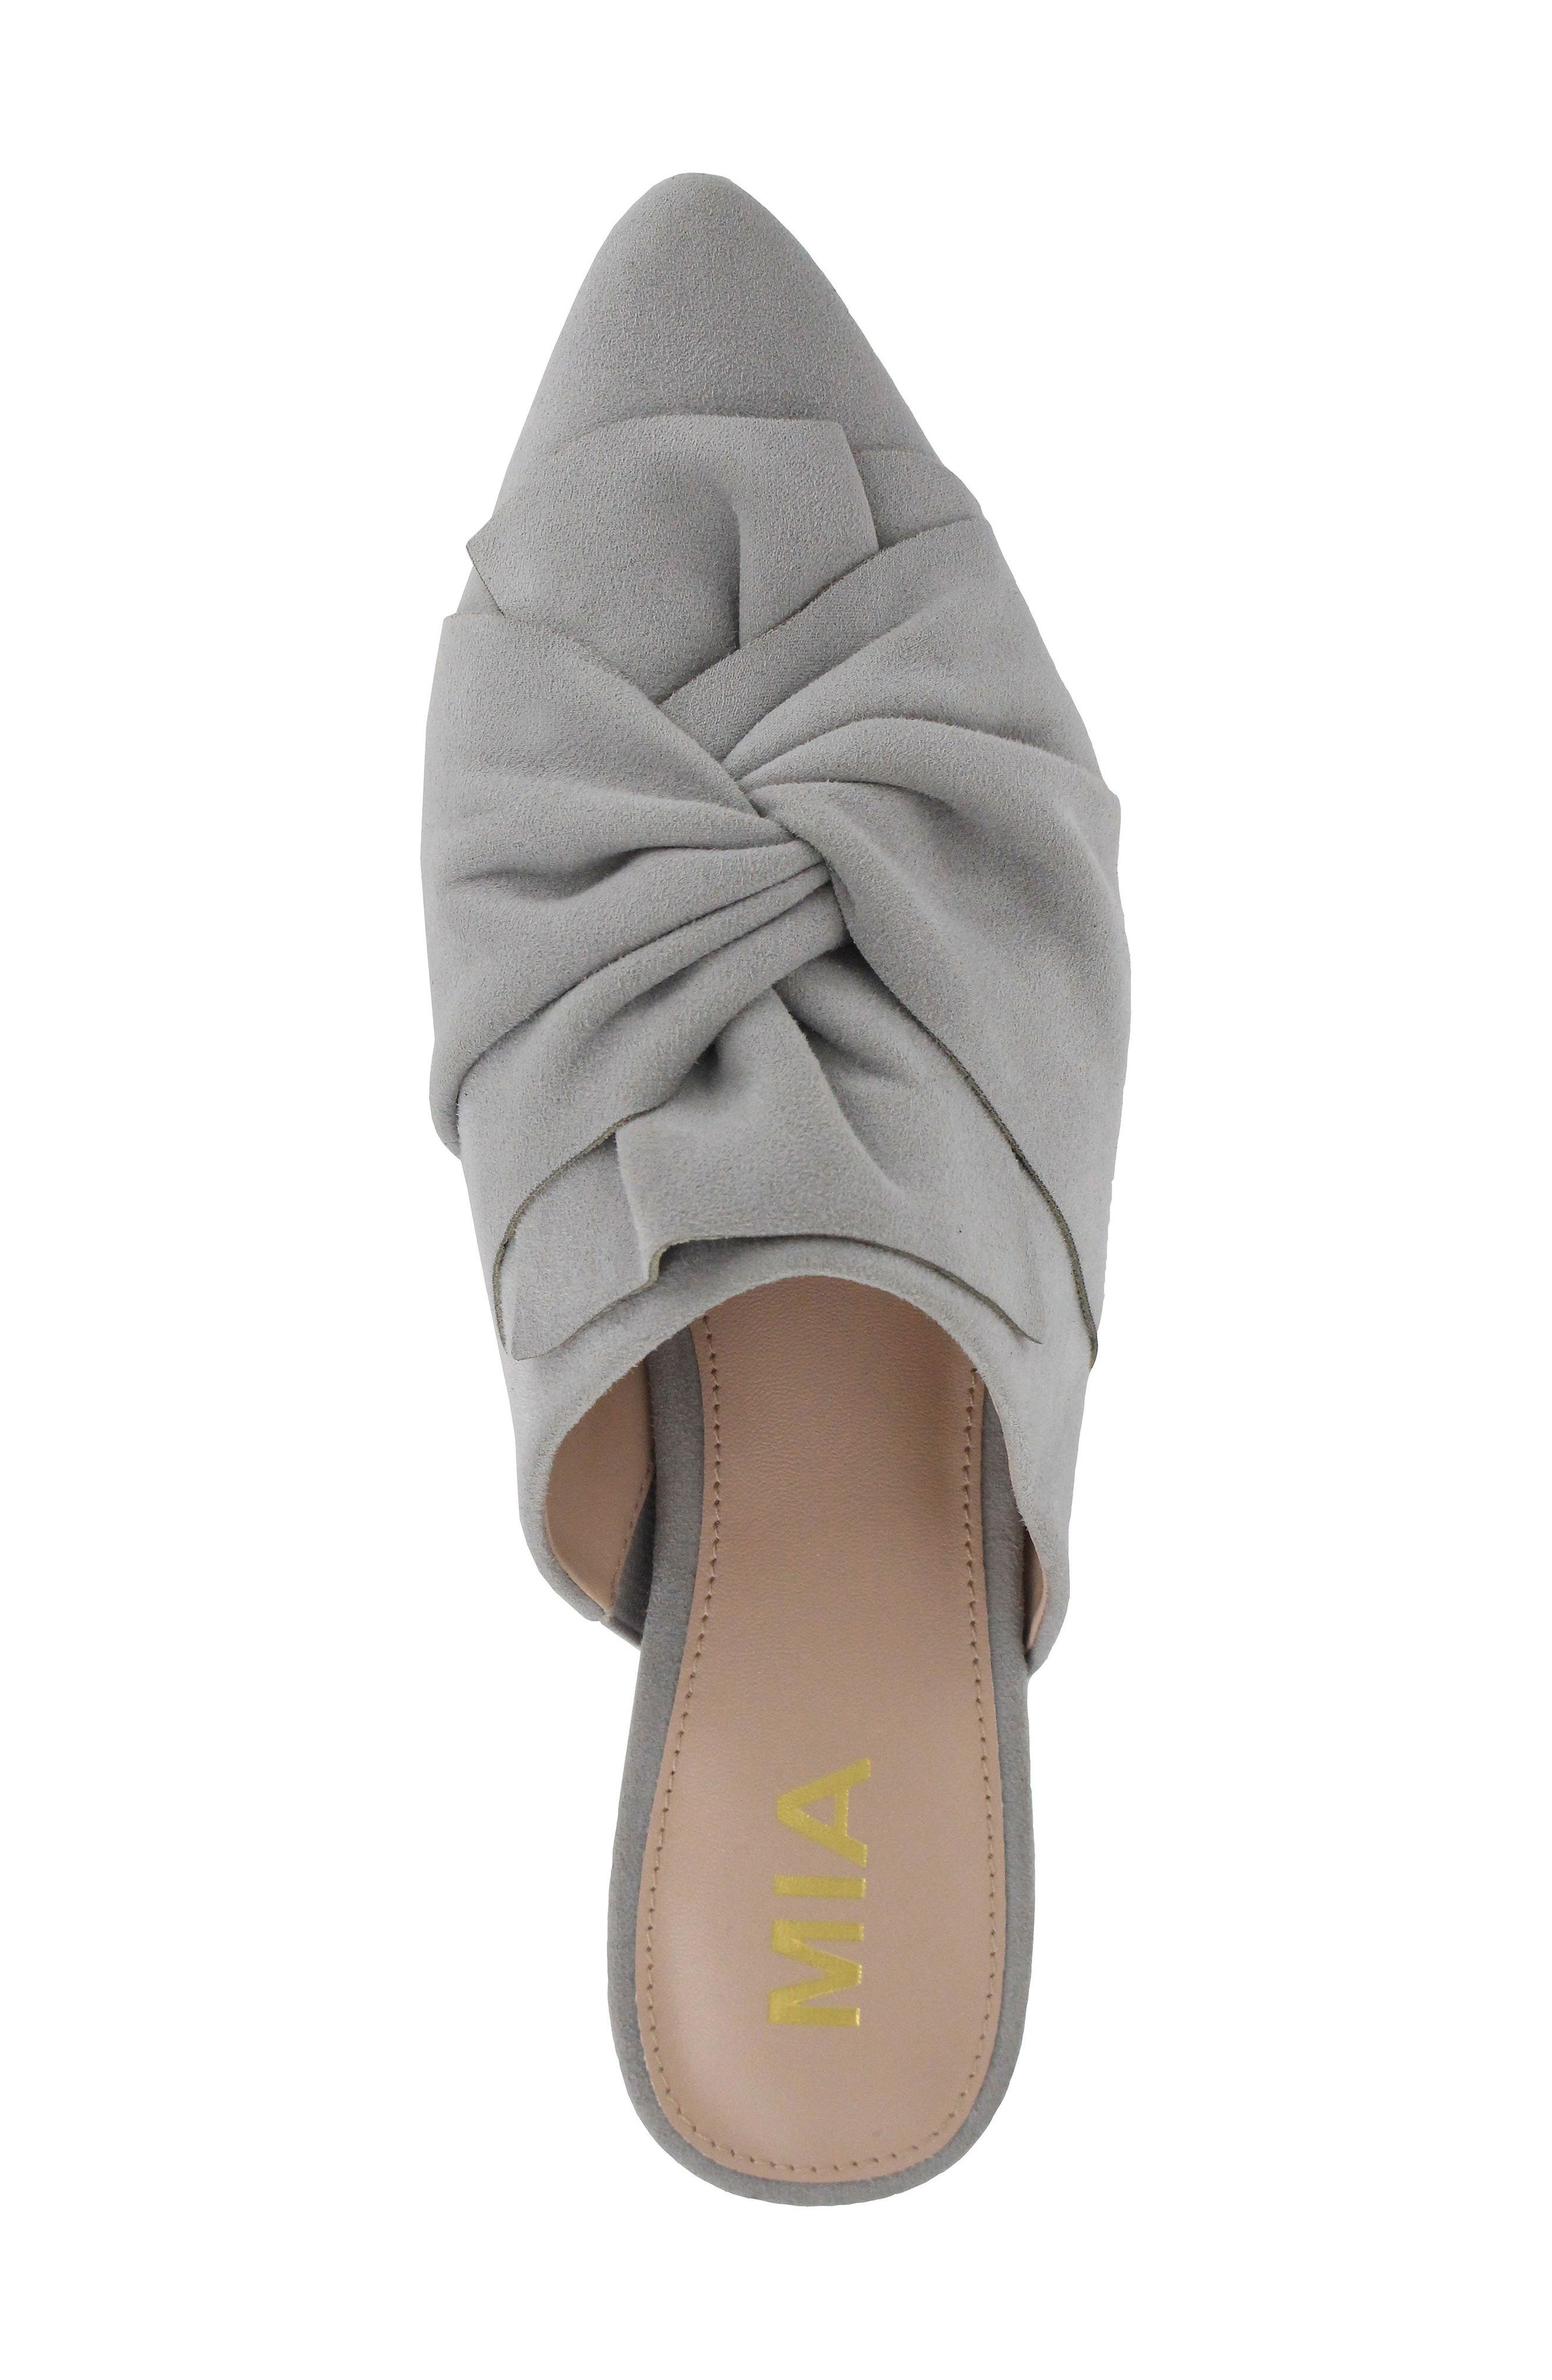 Cabaret Knotted Mule,                             Alternate thumbnail 3, color,                             Steel Gray Suede